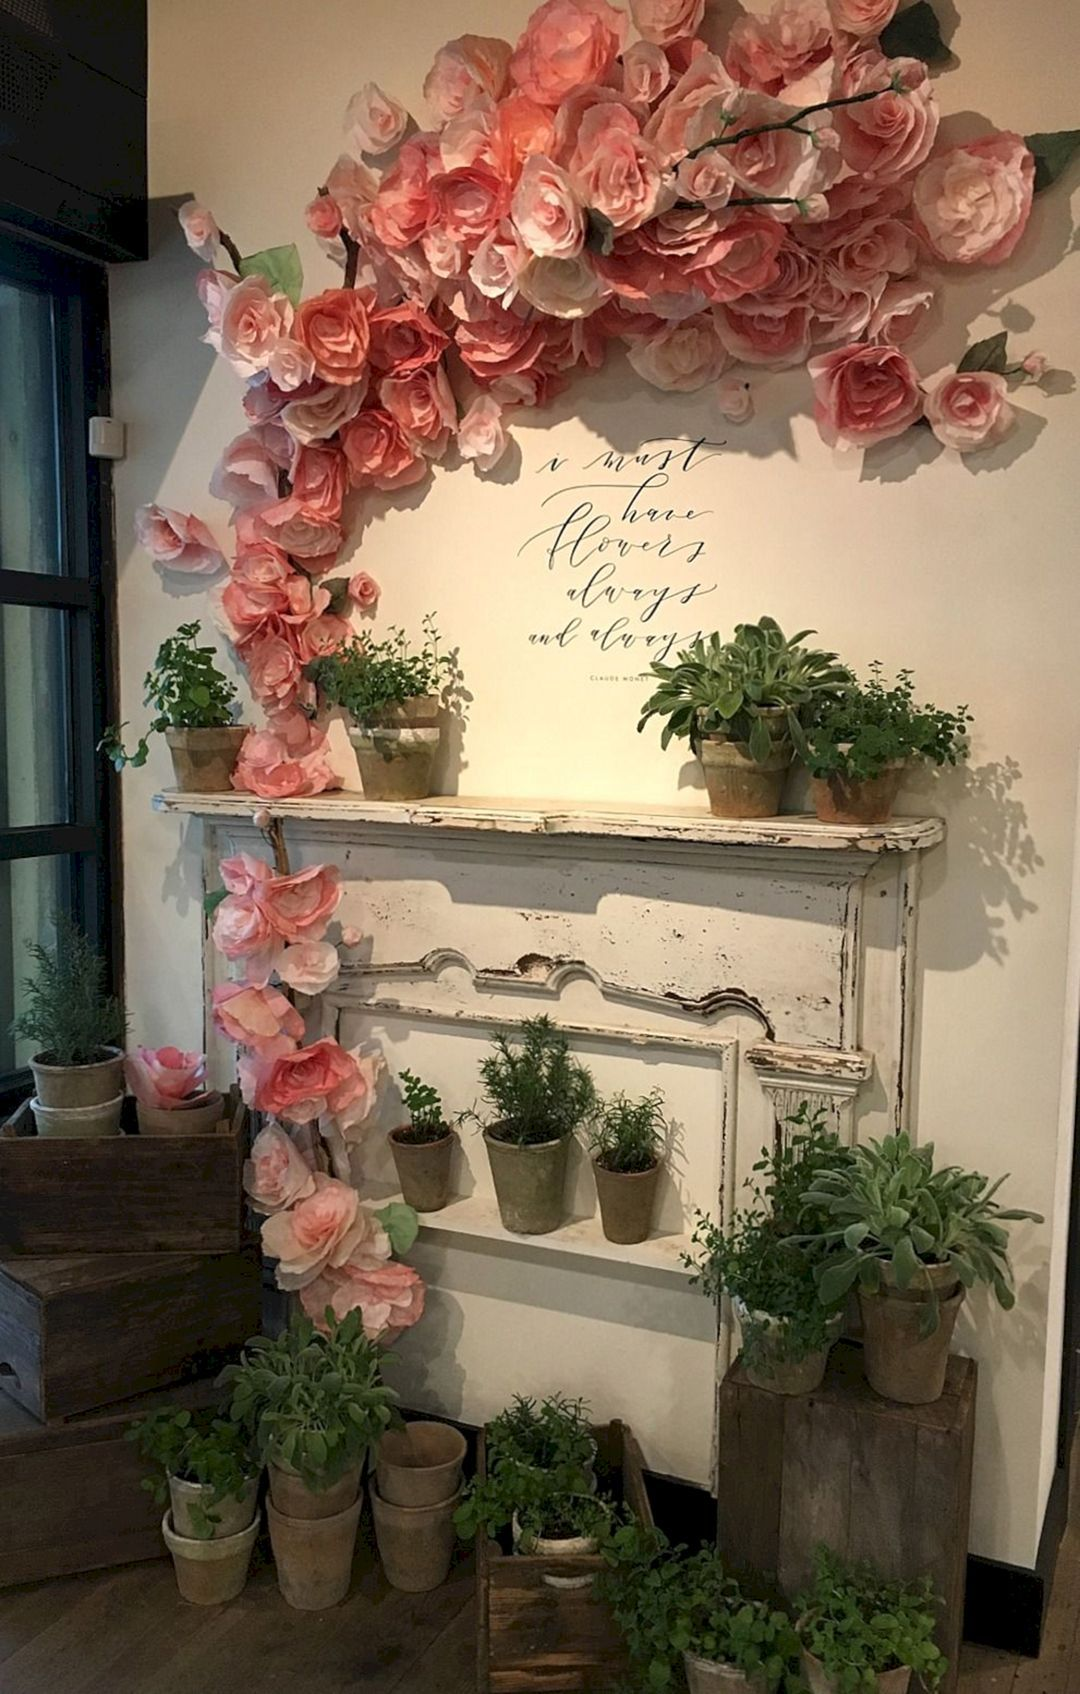 Awesome 30 Beautiful Flower Wall Decor Ideas For Creative Wall Decor Ideas Https Decoor Net 30 Beautiful Flower Wall Decor Spring Decor Creative Wall Decor